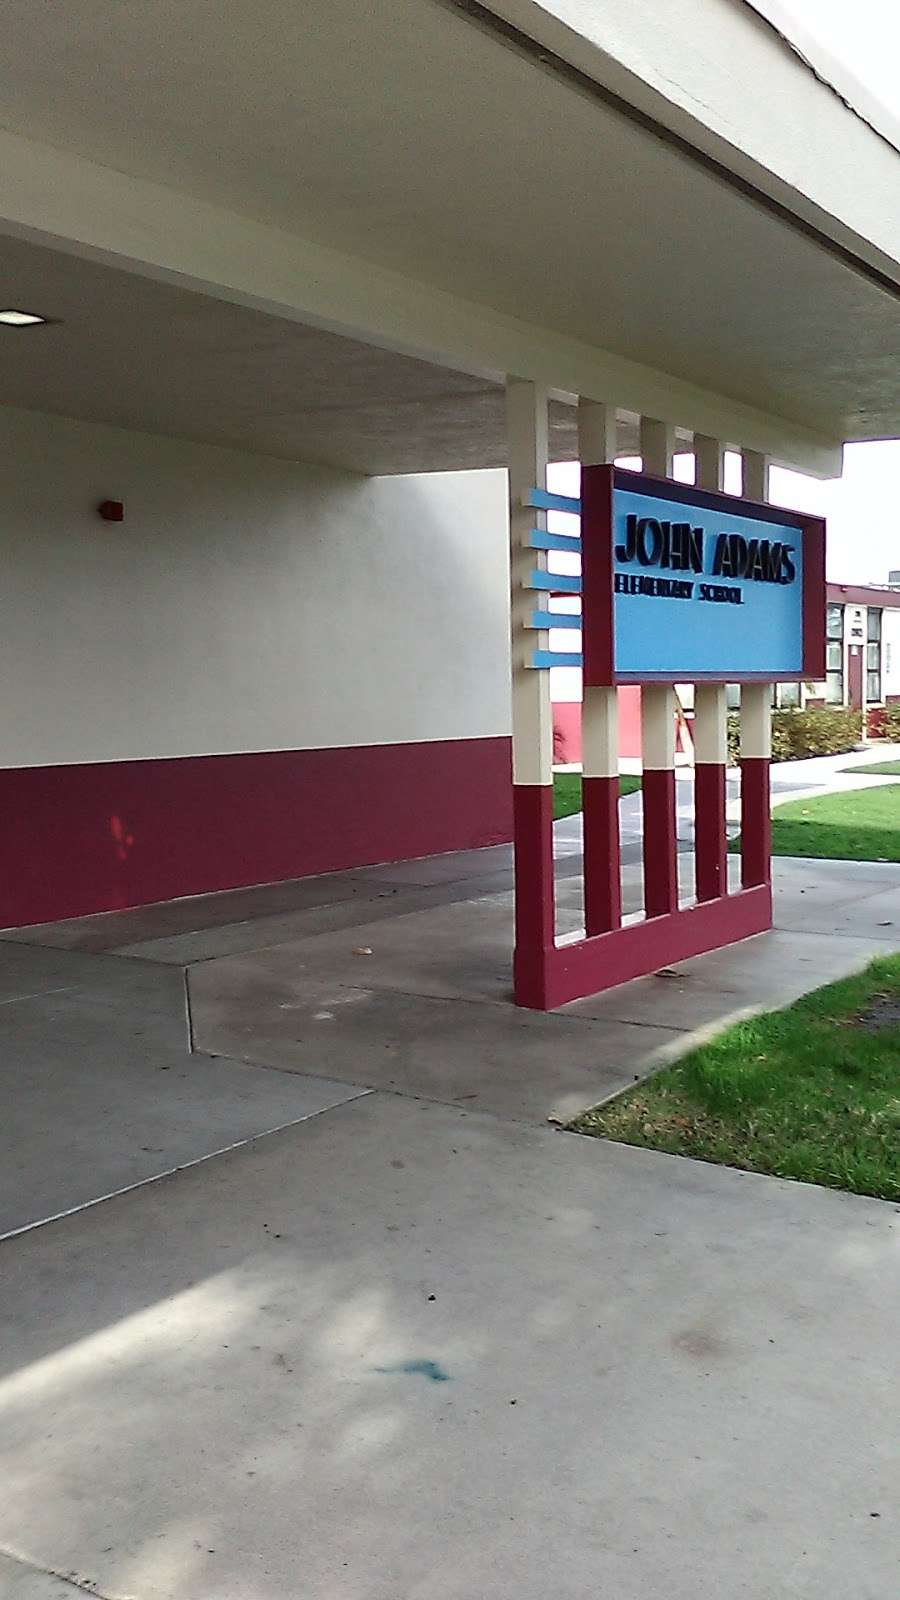 Adams Elementary School - school  | Photo 1 of 5 | Address: 2130 S Raitt St, Santa Ana, CA 92704, USA | Phone: (714) 967-3100